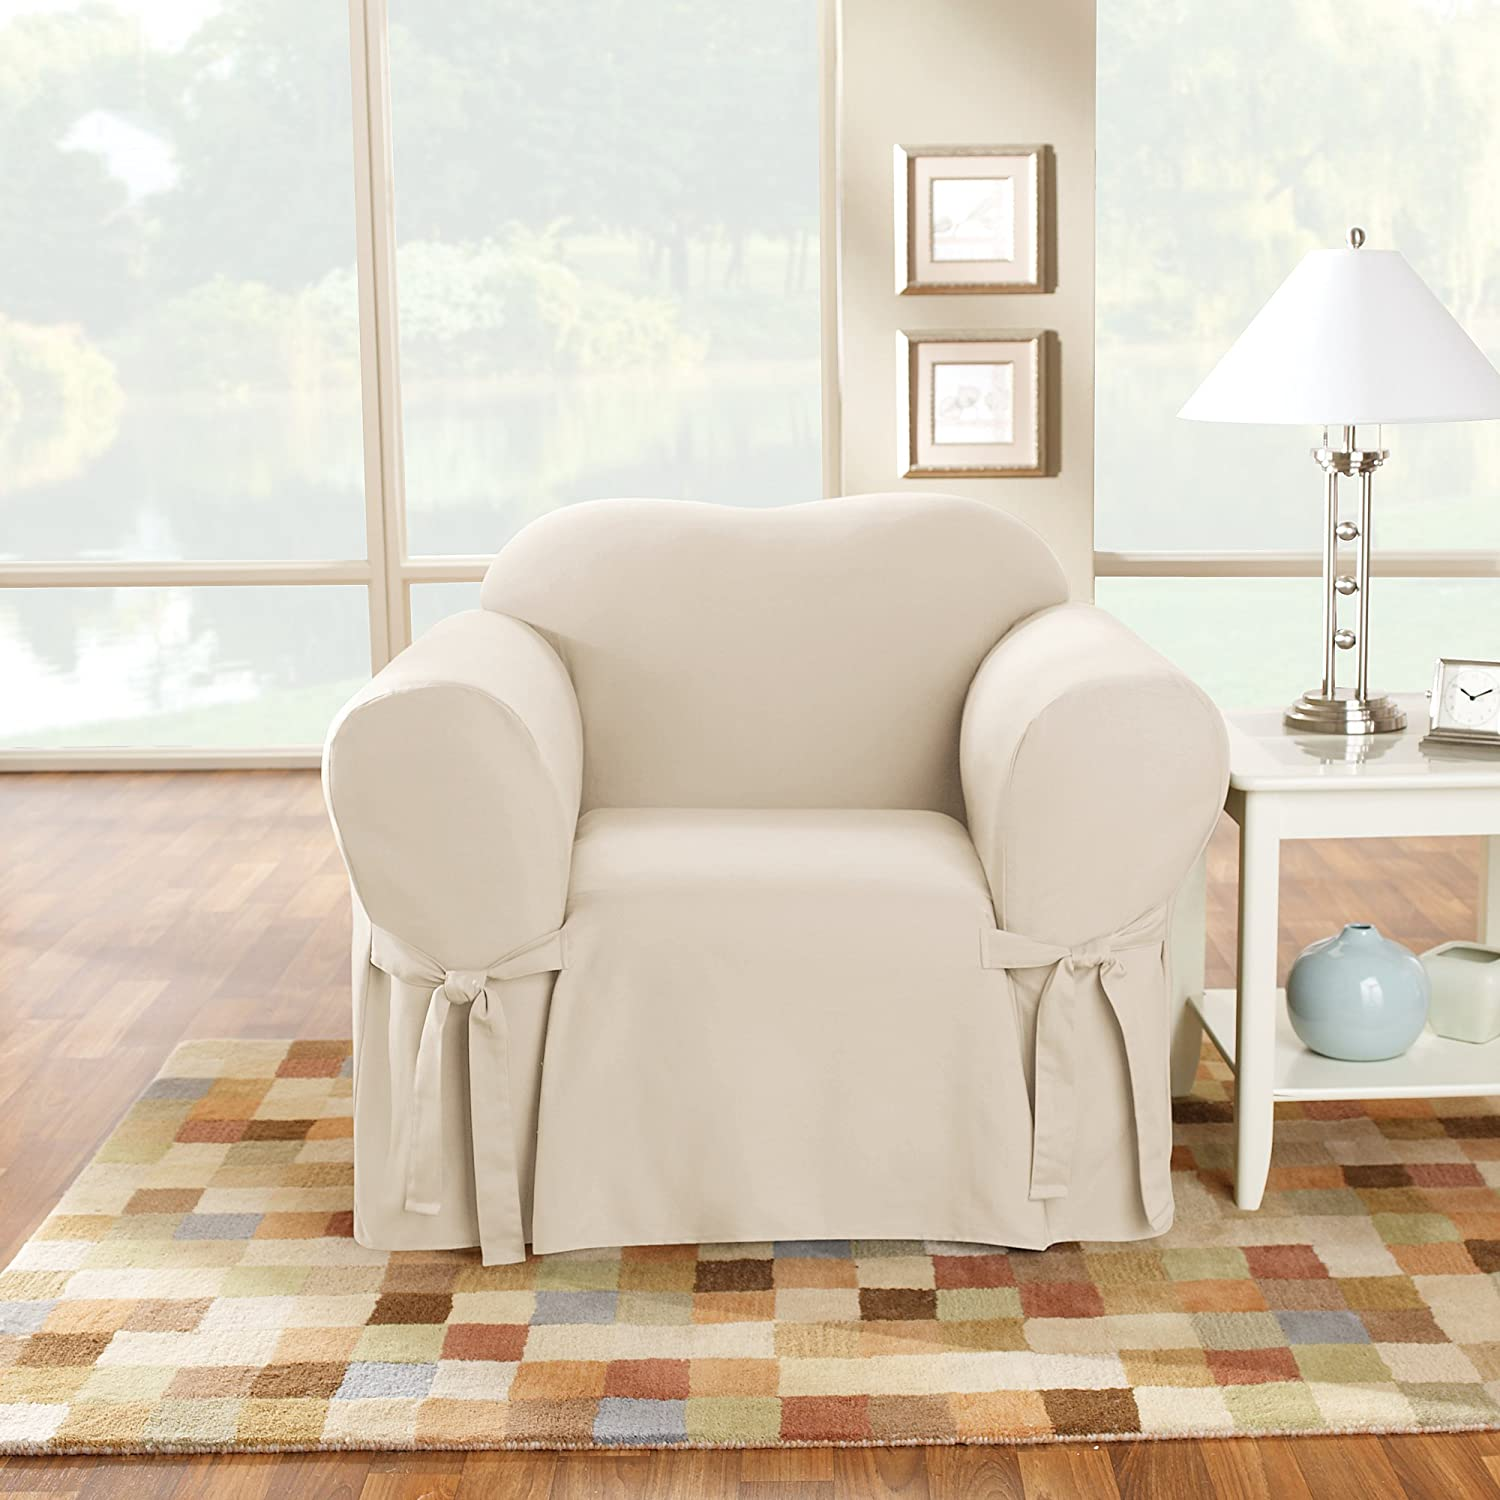 Amazon.com: Sure Fit algodón pato Loveseat Slipcover ...